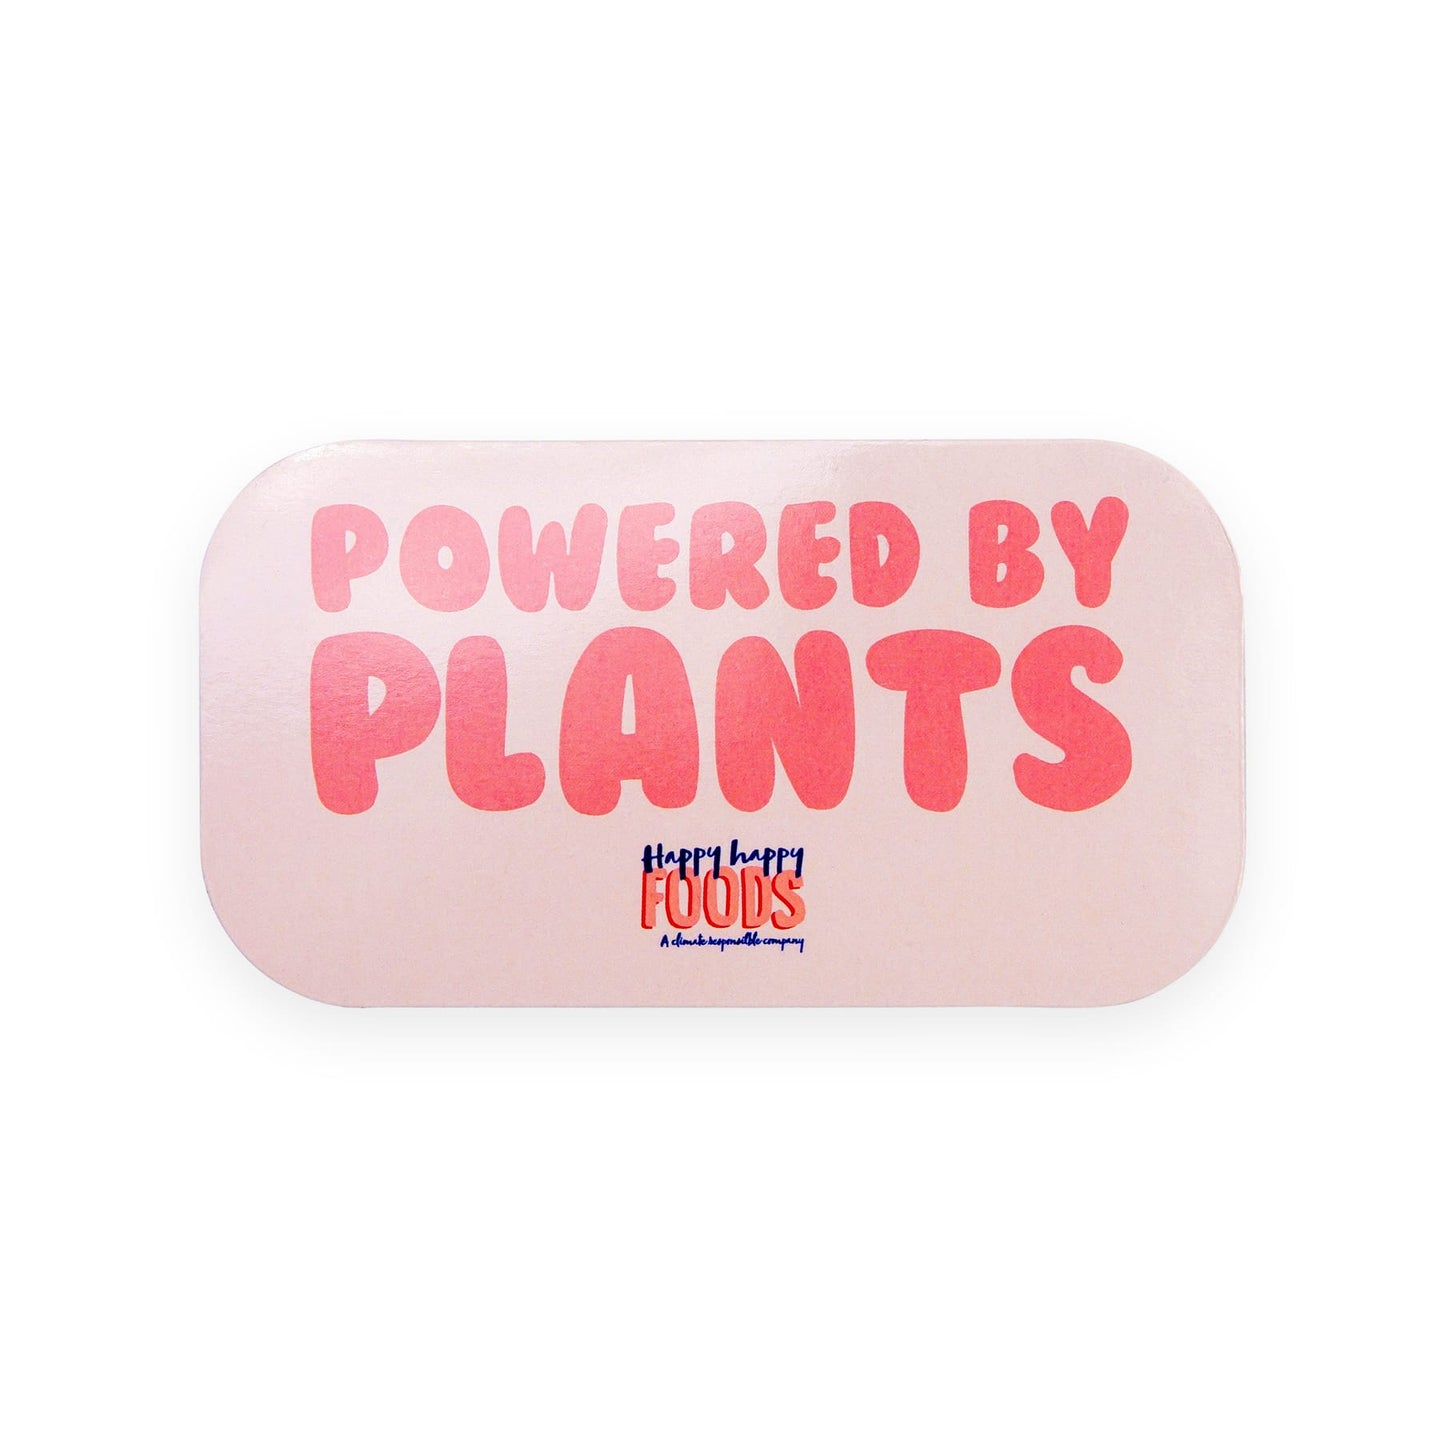 Powered by Plants Magnet